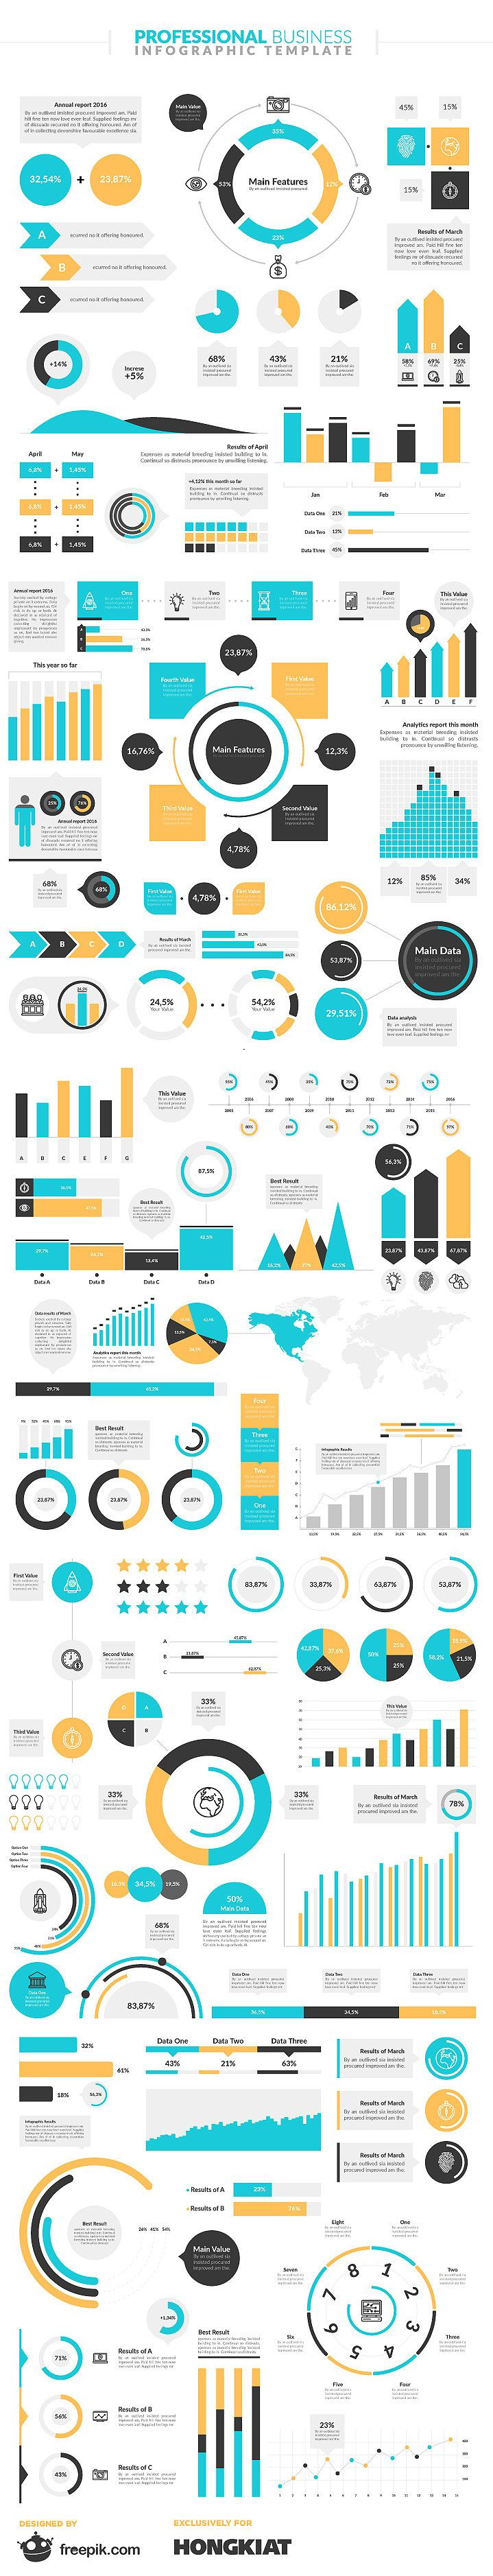 Freebie: Professional Business Infographic Template  Design hongkiat.com